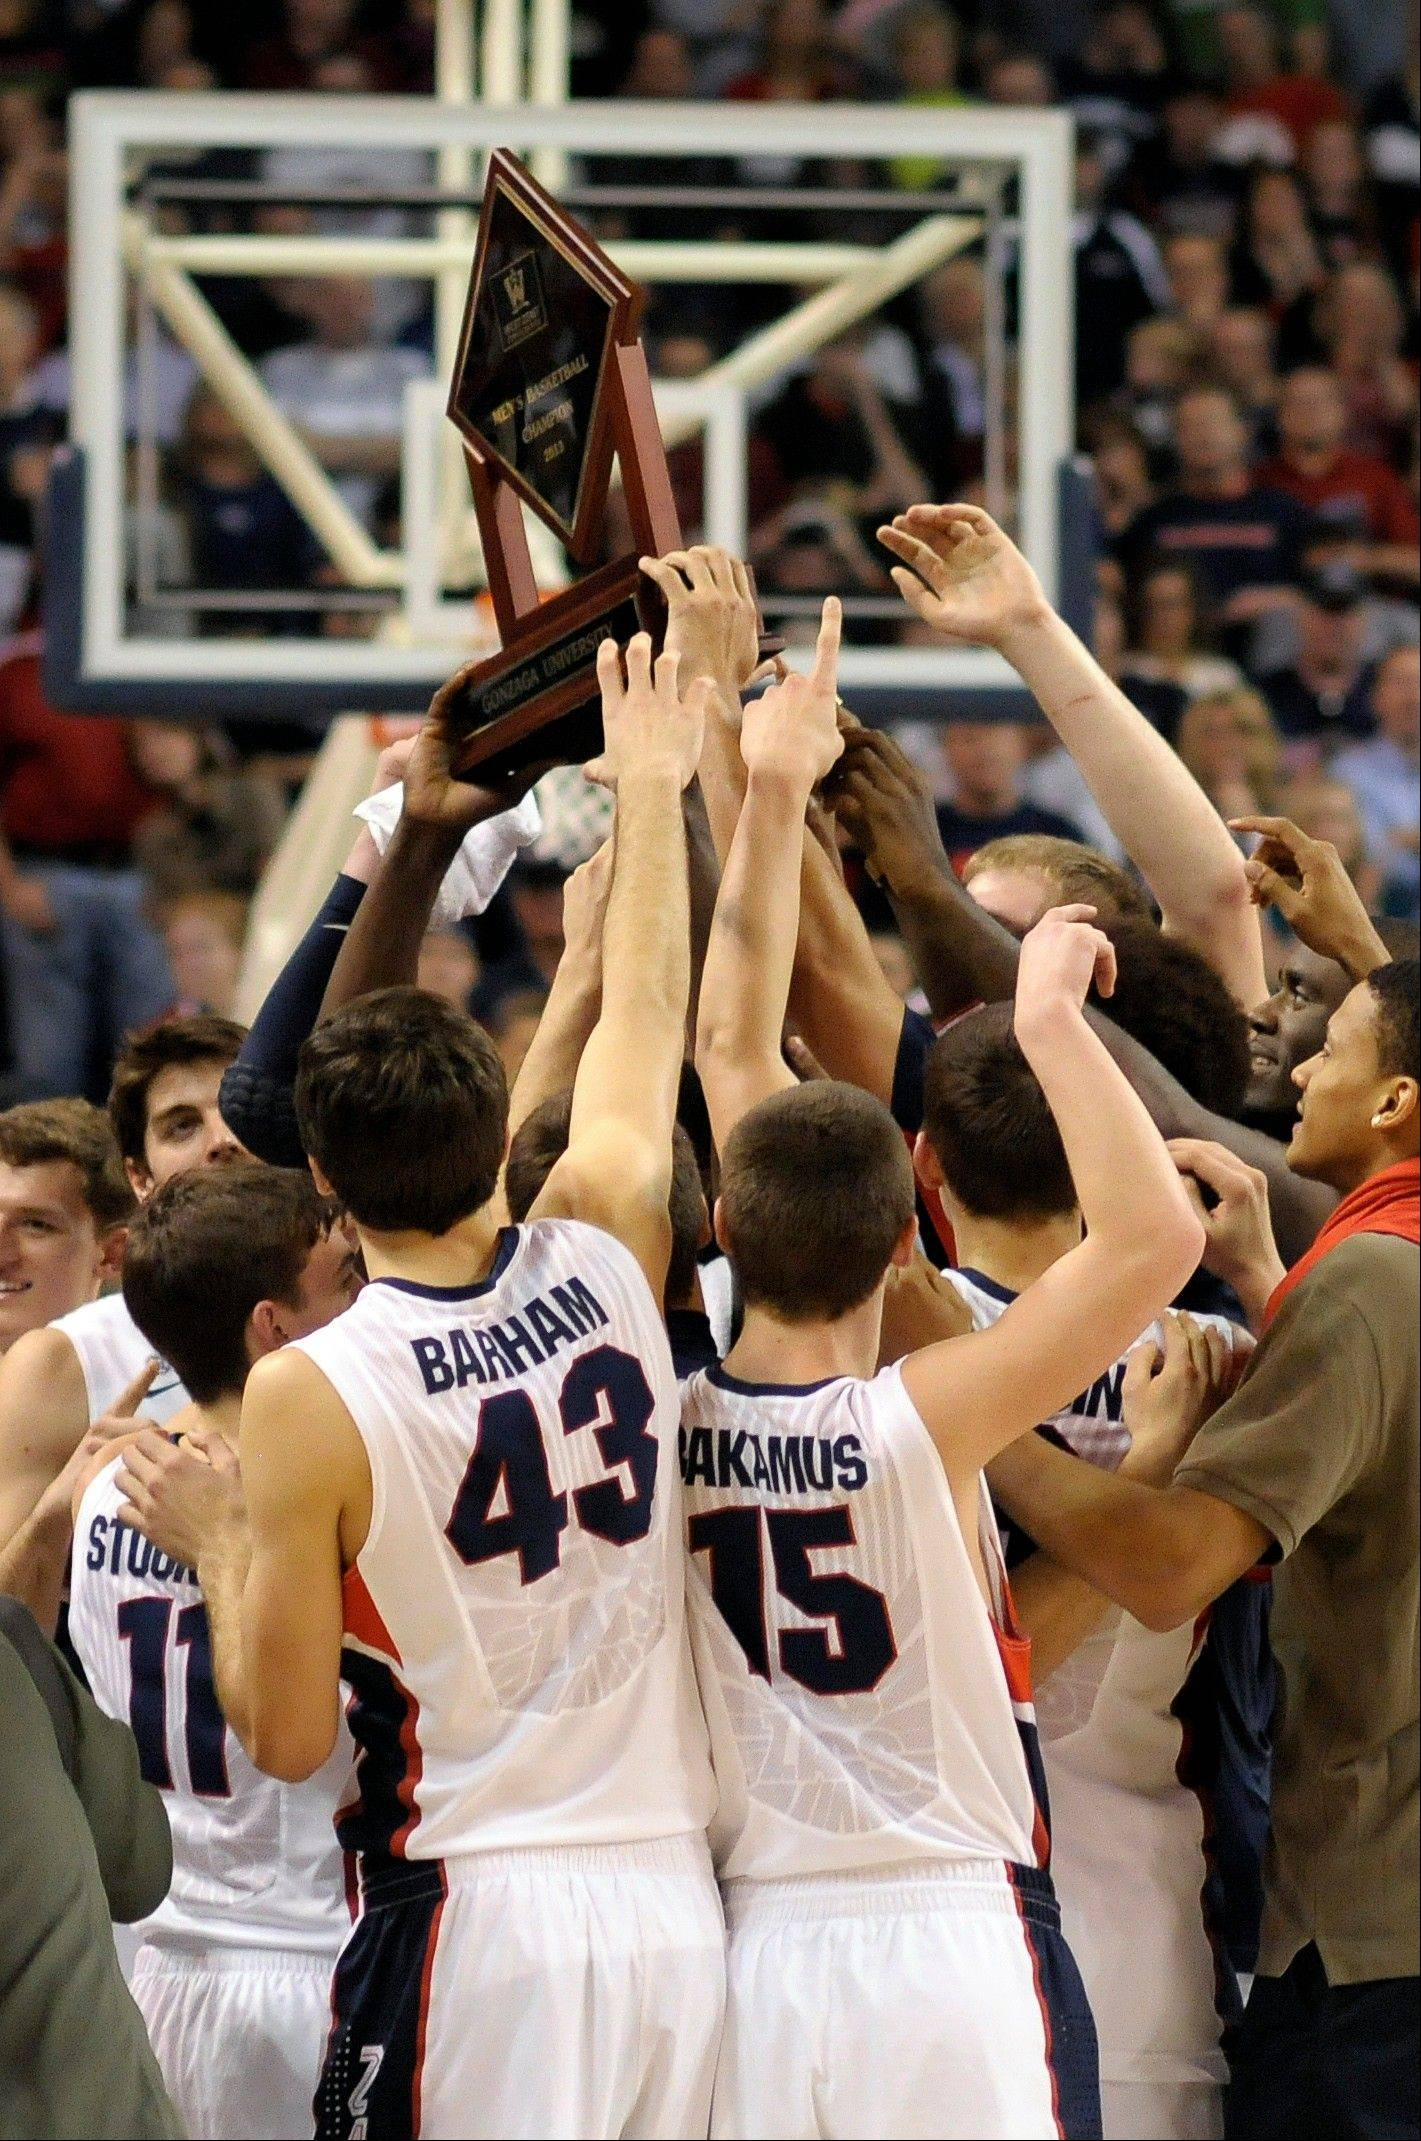 Gonzaga, who celebrated after winning the West Coast Conference Championship against Portland on March 2, earned a No. 1 seed in the NCAA men�s basketball tournament.